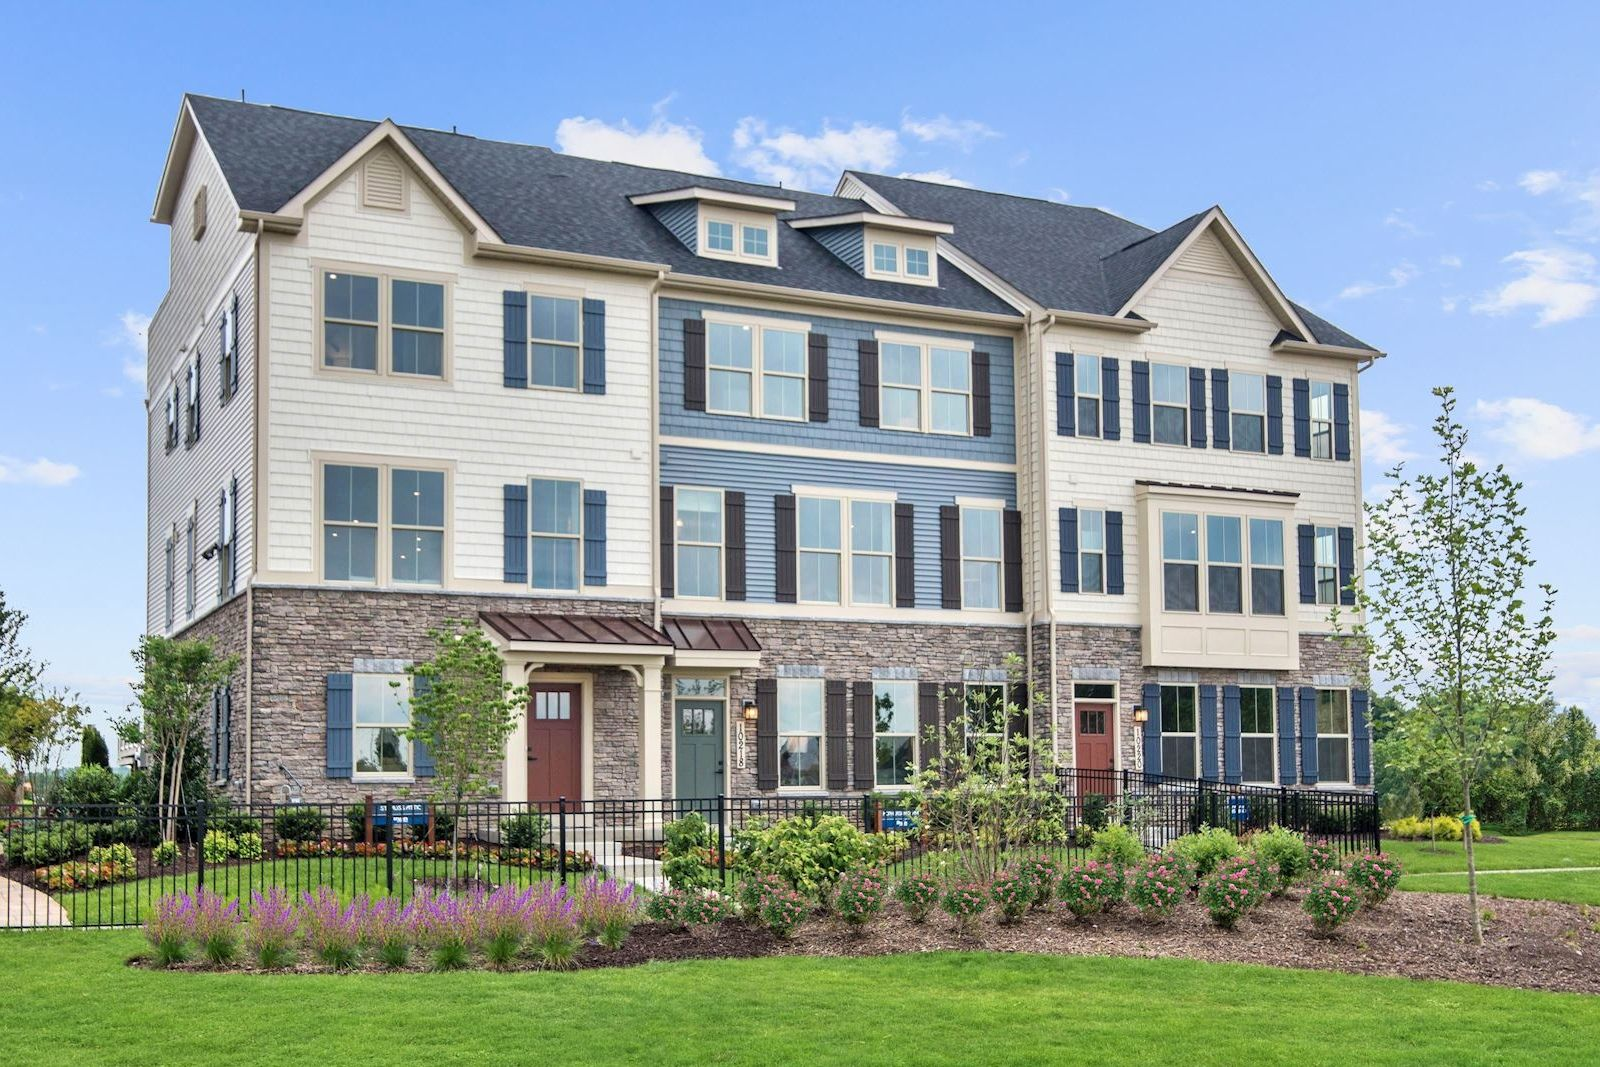 WELCOME TO LAKE LINGANORE OAKDALE IN NEW MARKET, MD:Own a luxury townhome with the space of a single family home with up to 4 finished levels, 5 bedrooms, 4.5 bathrooms. Plus walkable to top rated Oakdale schools.Schedule your appointment.